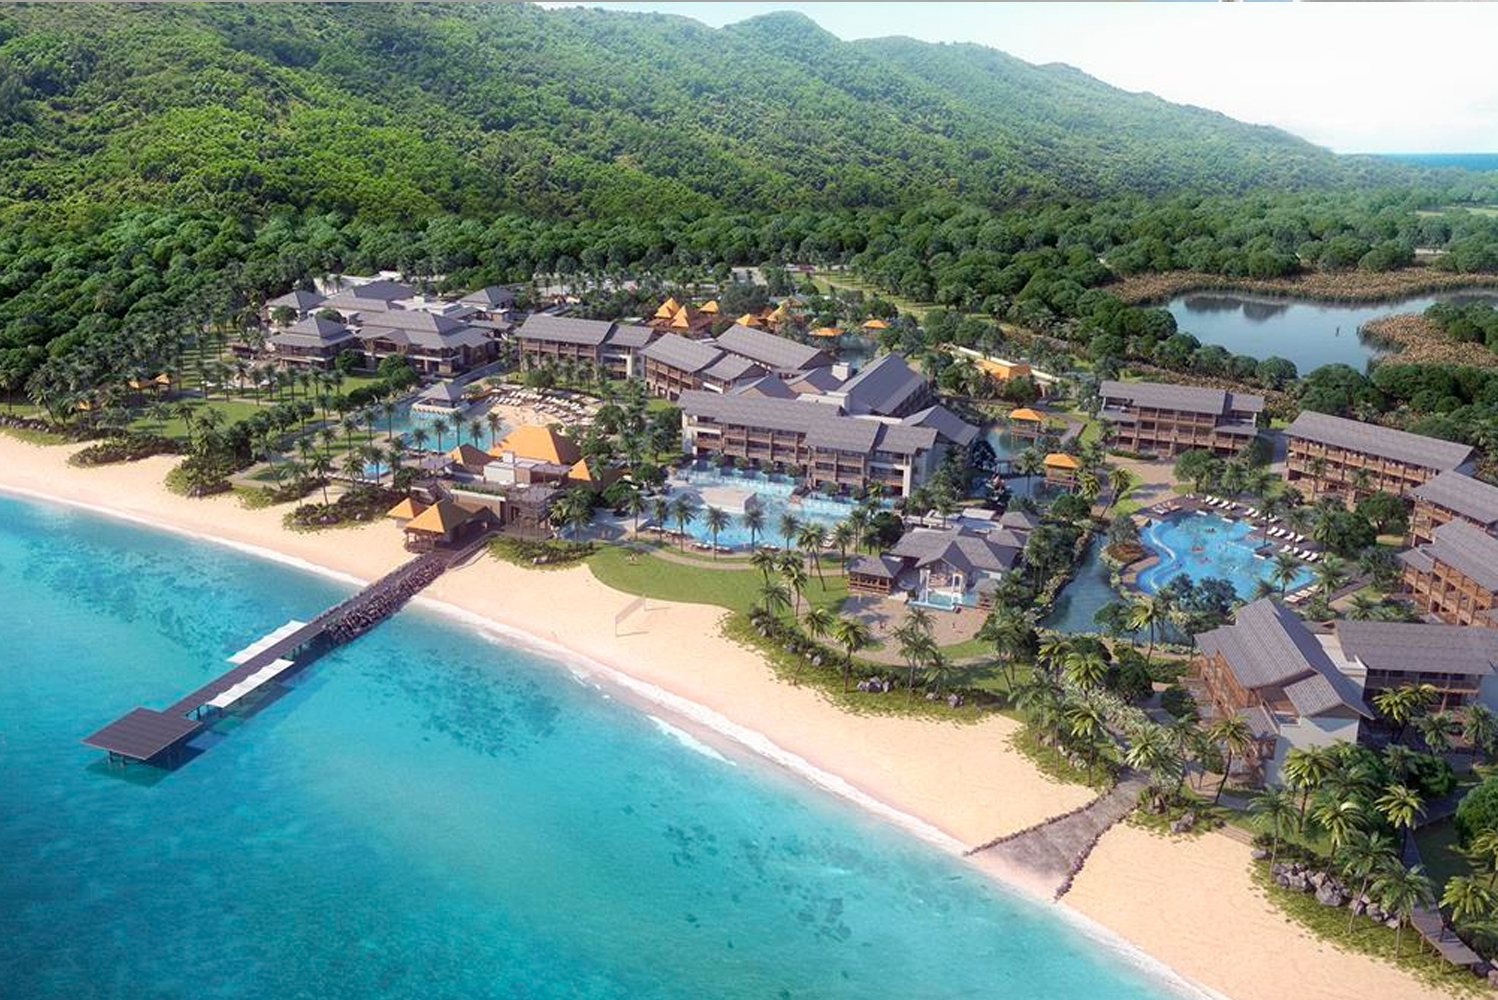 Cabrits Resort & Spa Kempinski Dominica has opened as the second venture of Kempinski Hotels in this region and Dominica's newest five-star resort.